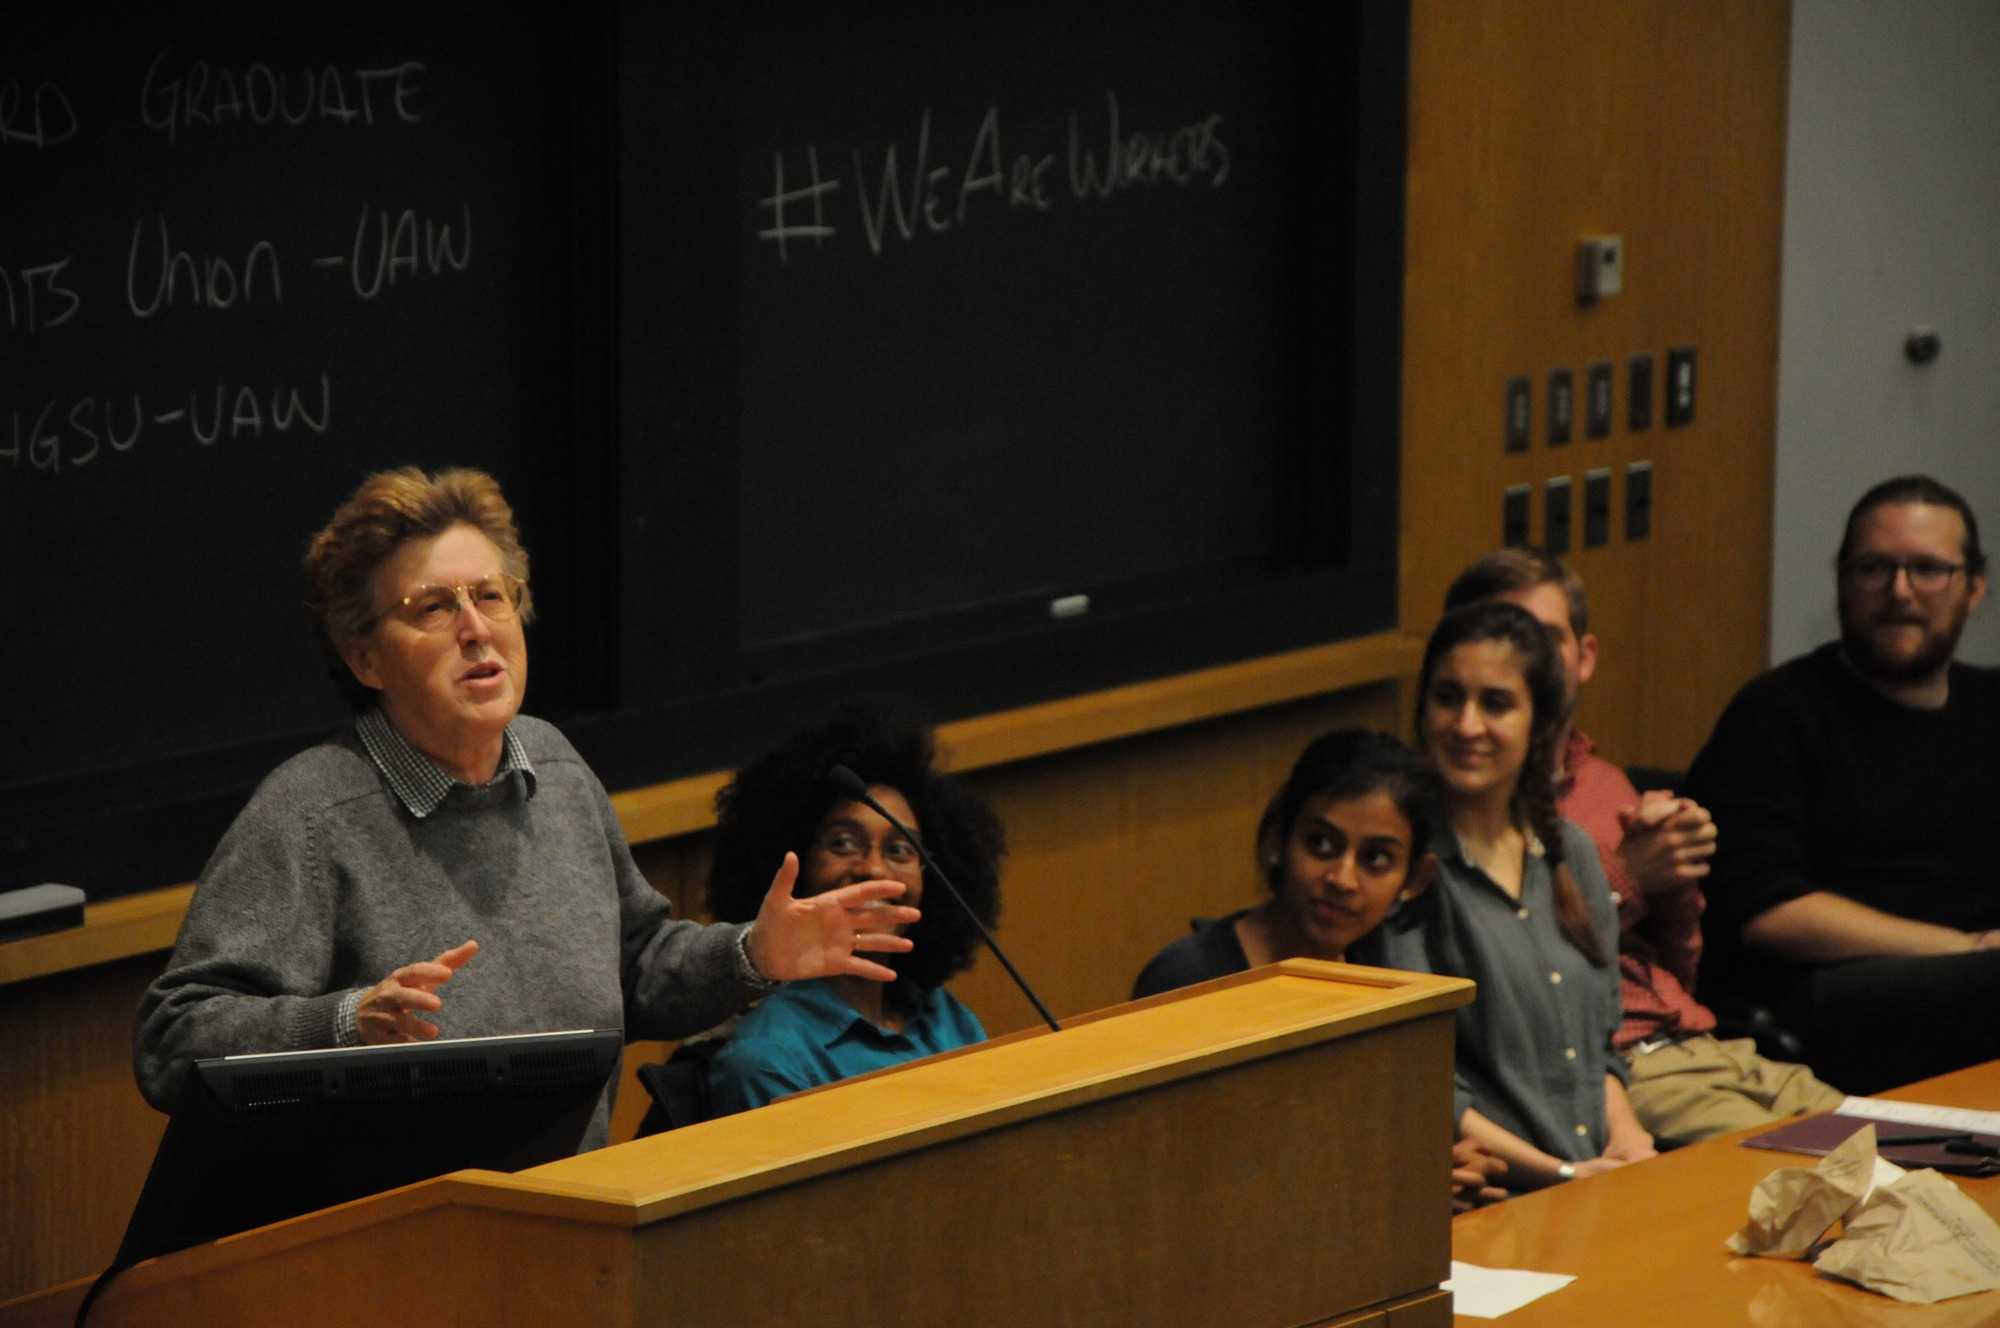 Dr. Elaine Bernard, executive director of the Labor and Worklife Program at Harvard Law School, argues for unionization.  The Graduate Student Union hosted Harvard and community speakers as part of the We Are Workers: National Graduate Worker Day of Action.